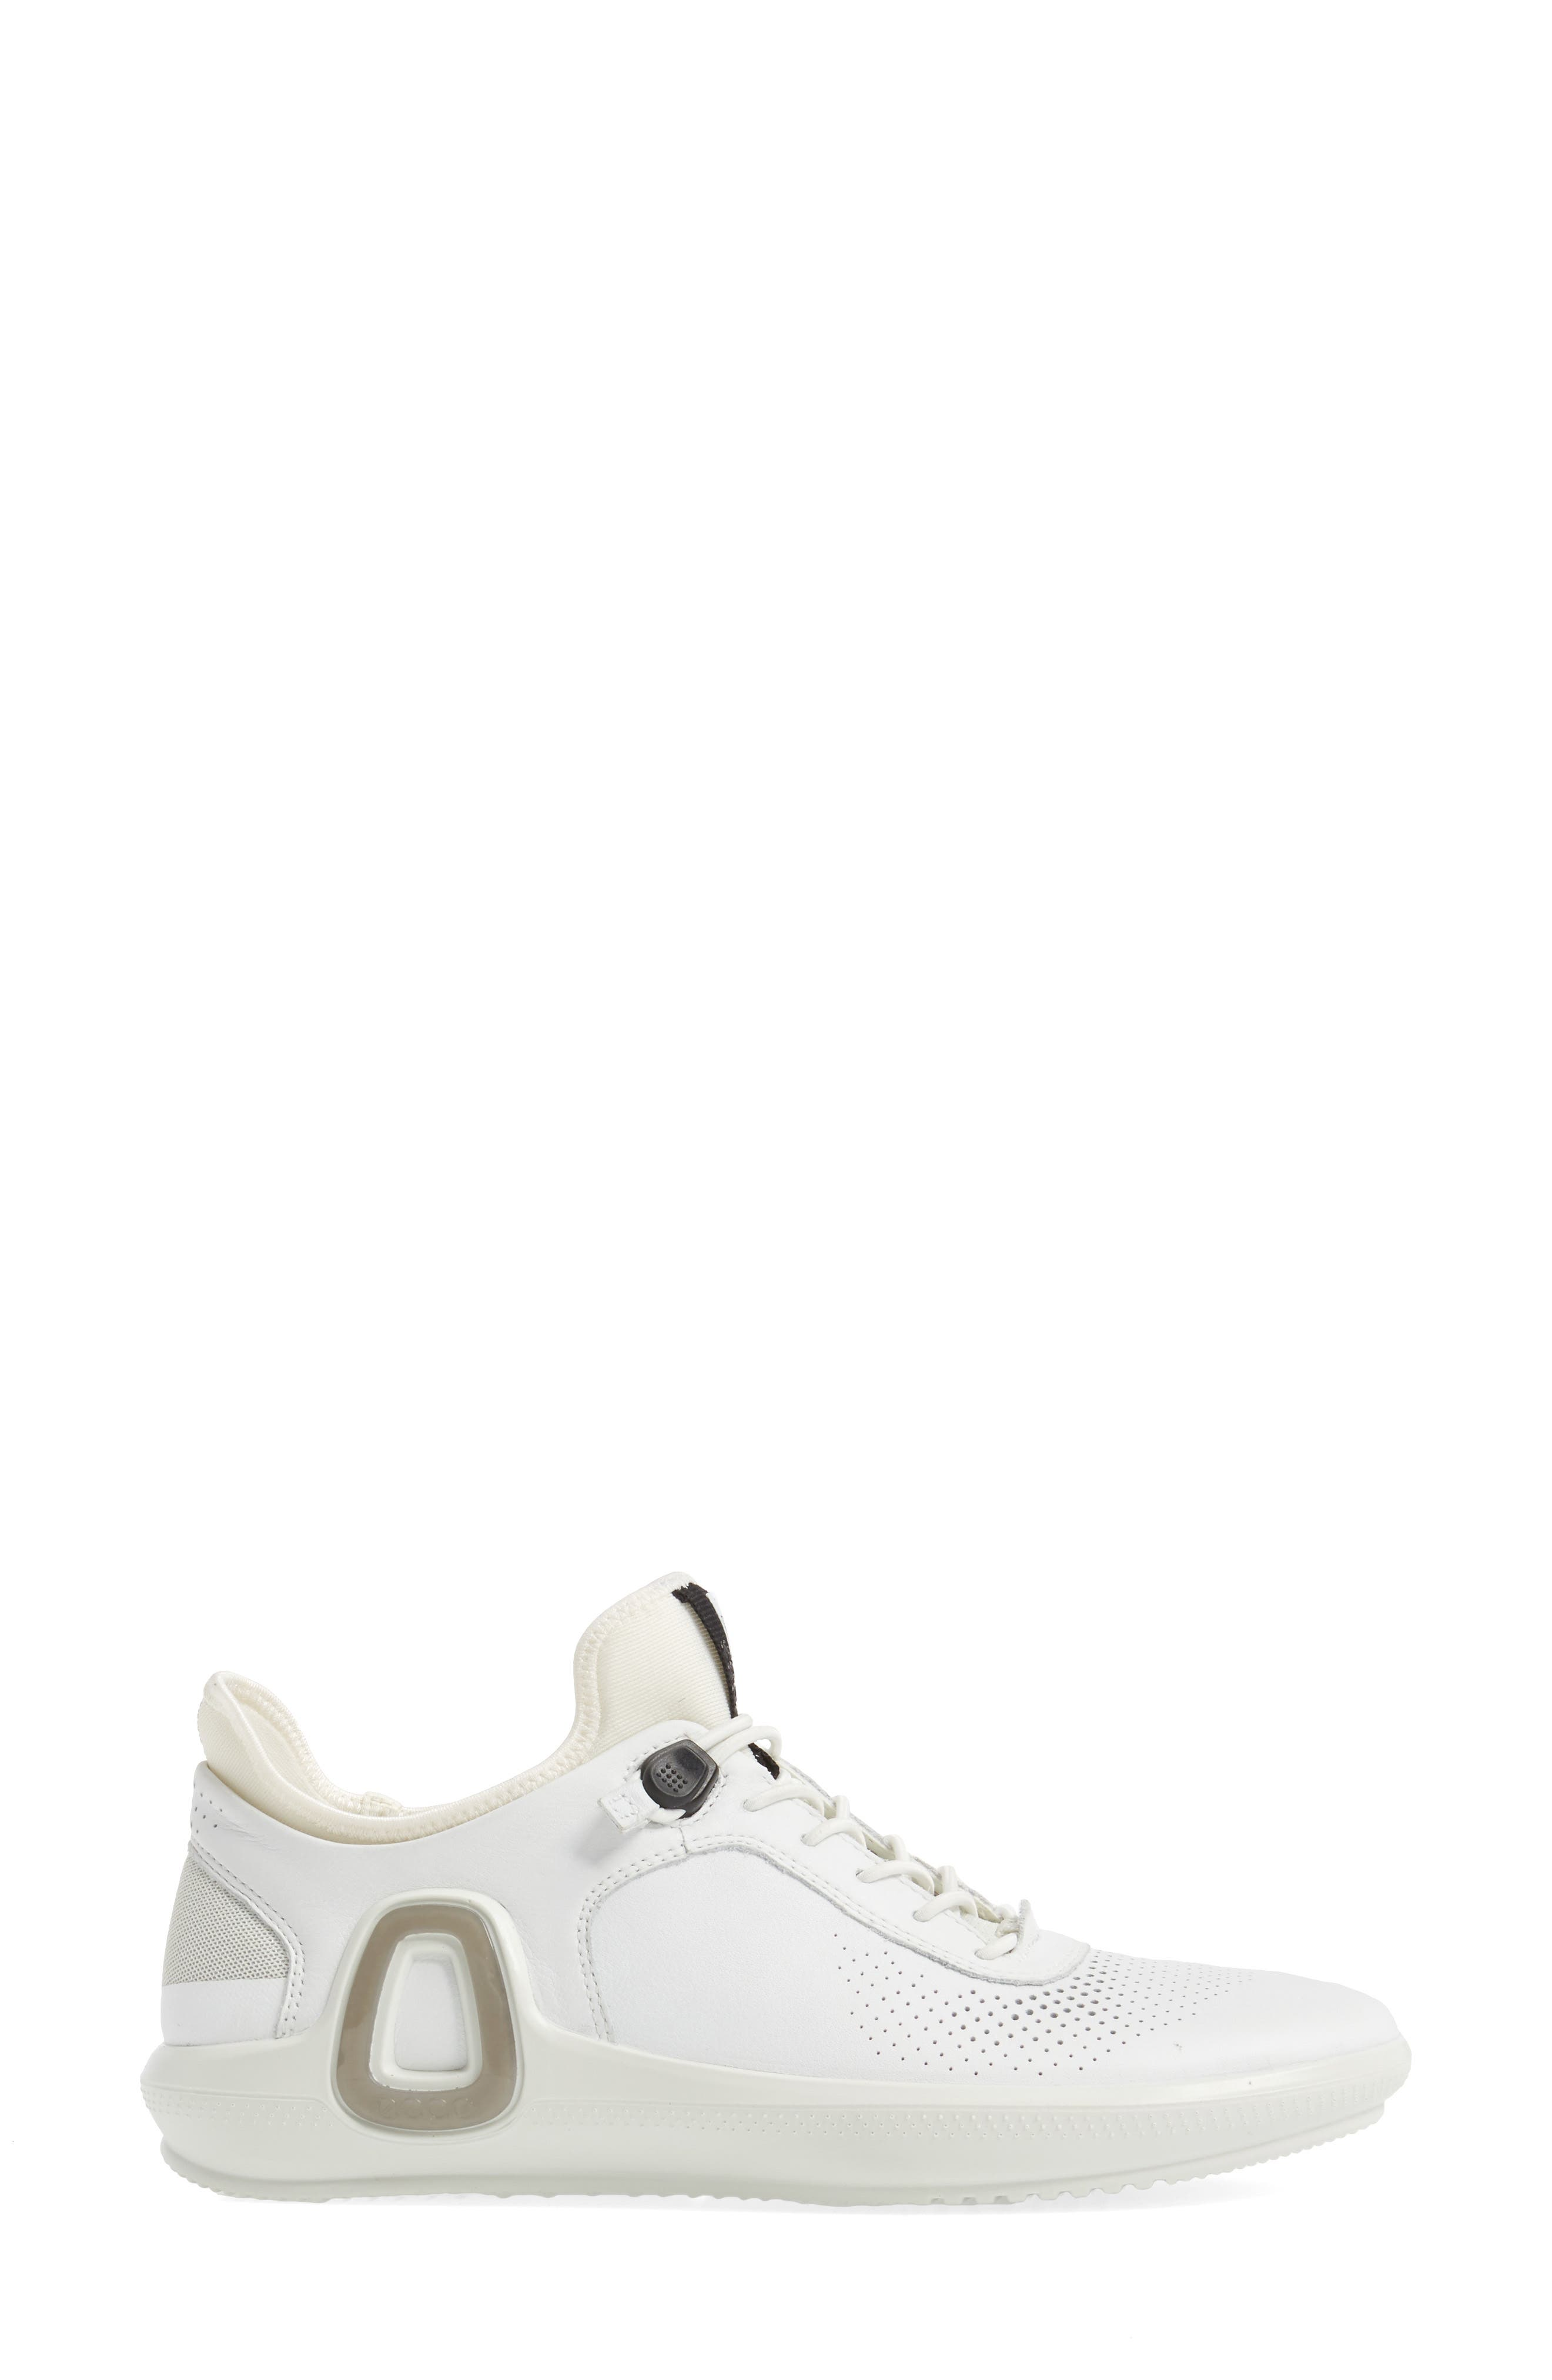 Intrinsic 3 Sneaker,                             Alternate thumbnail 3, color,                             WHITE LEATHER